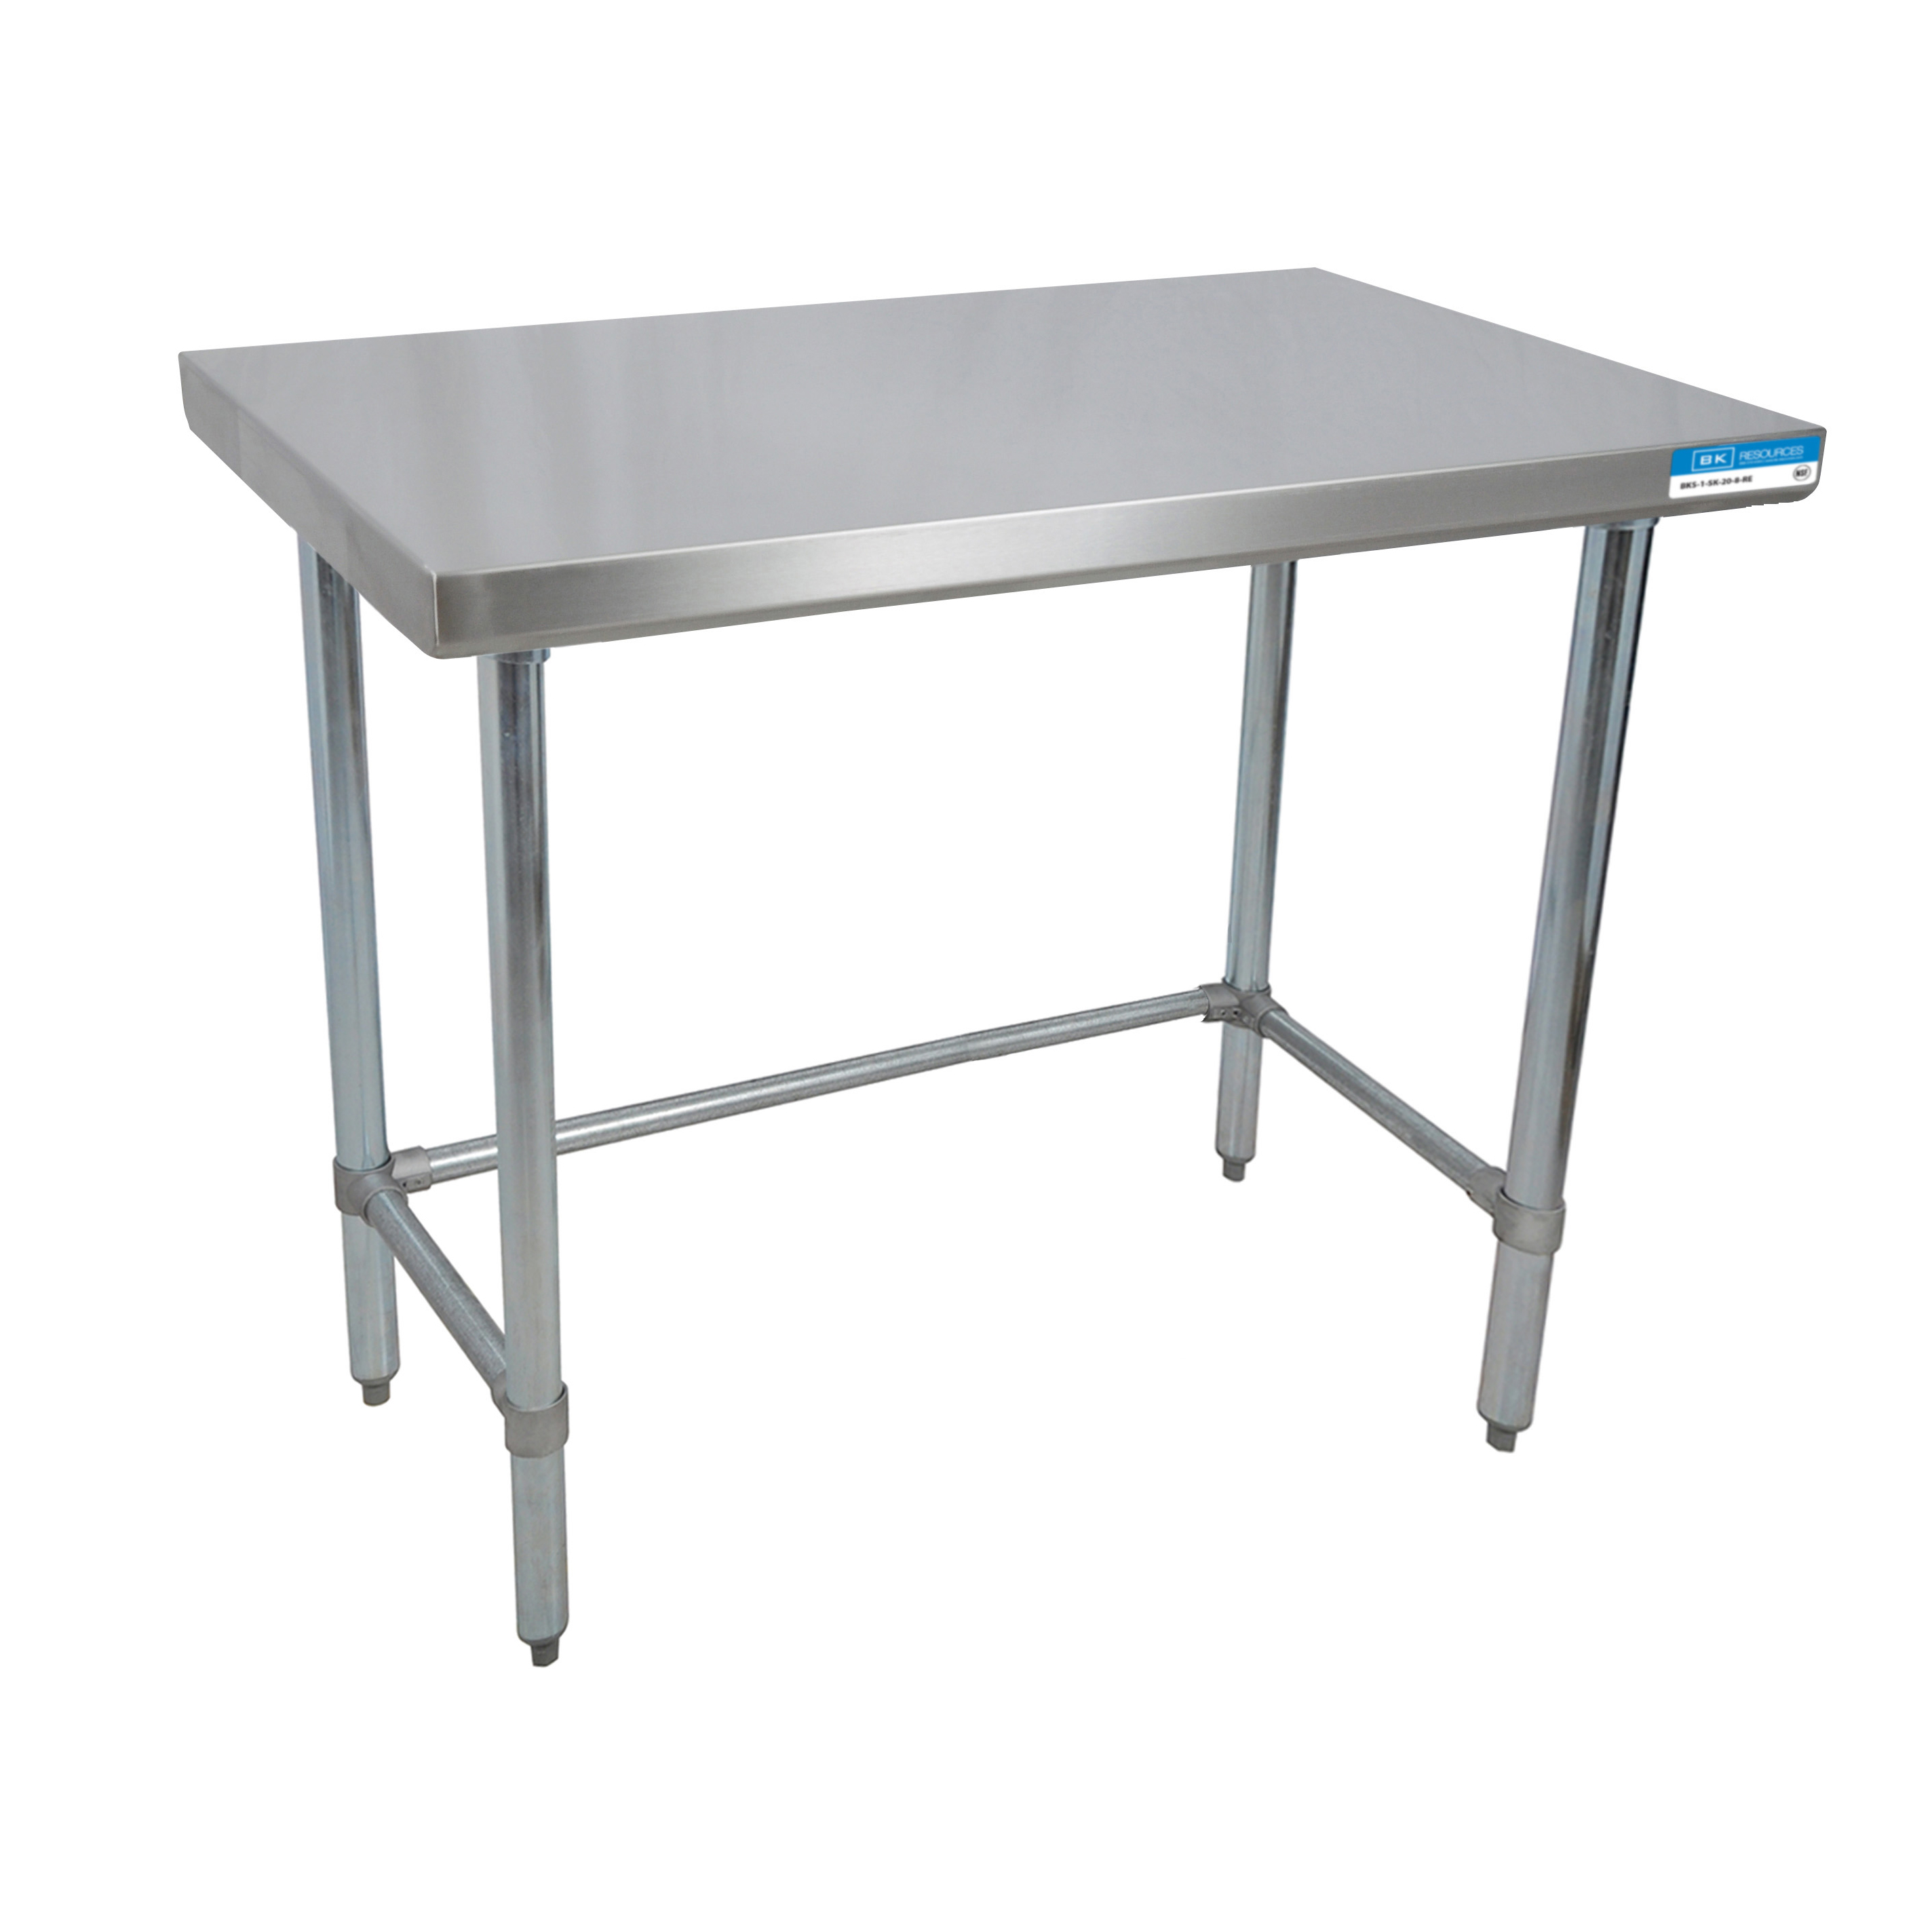 BK Resources QVTOB-4824 work table,  40